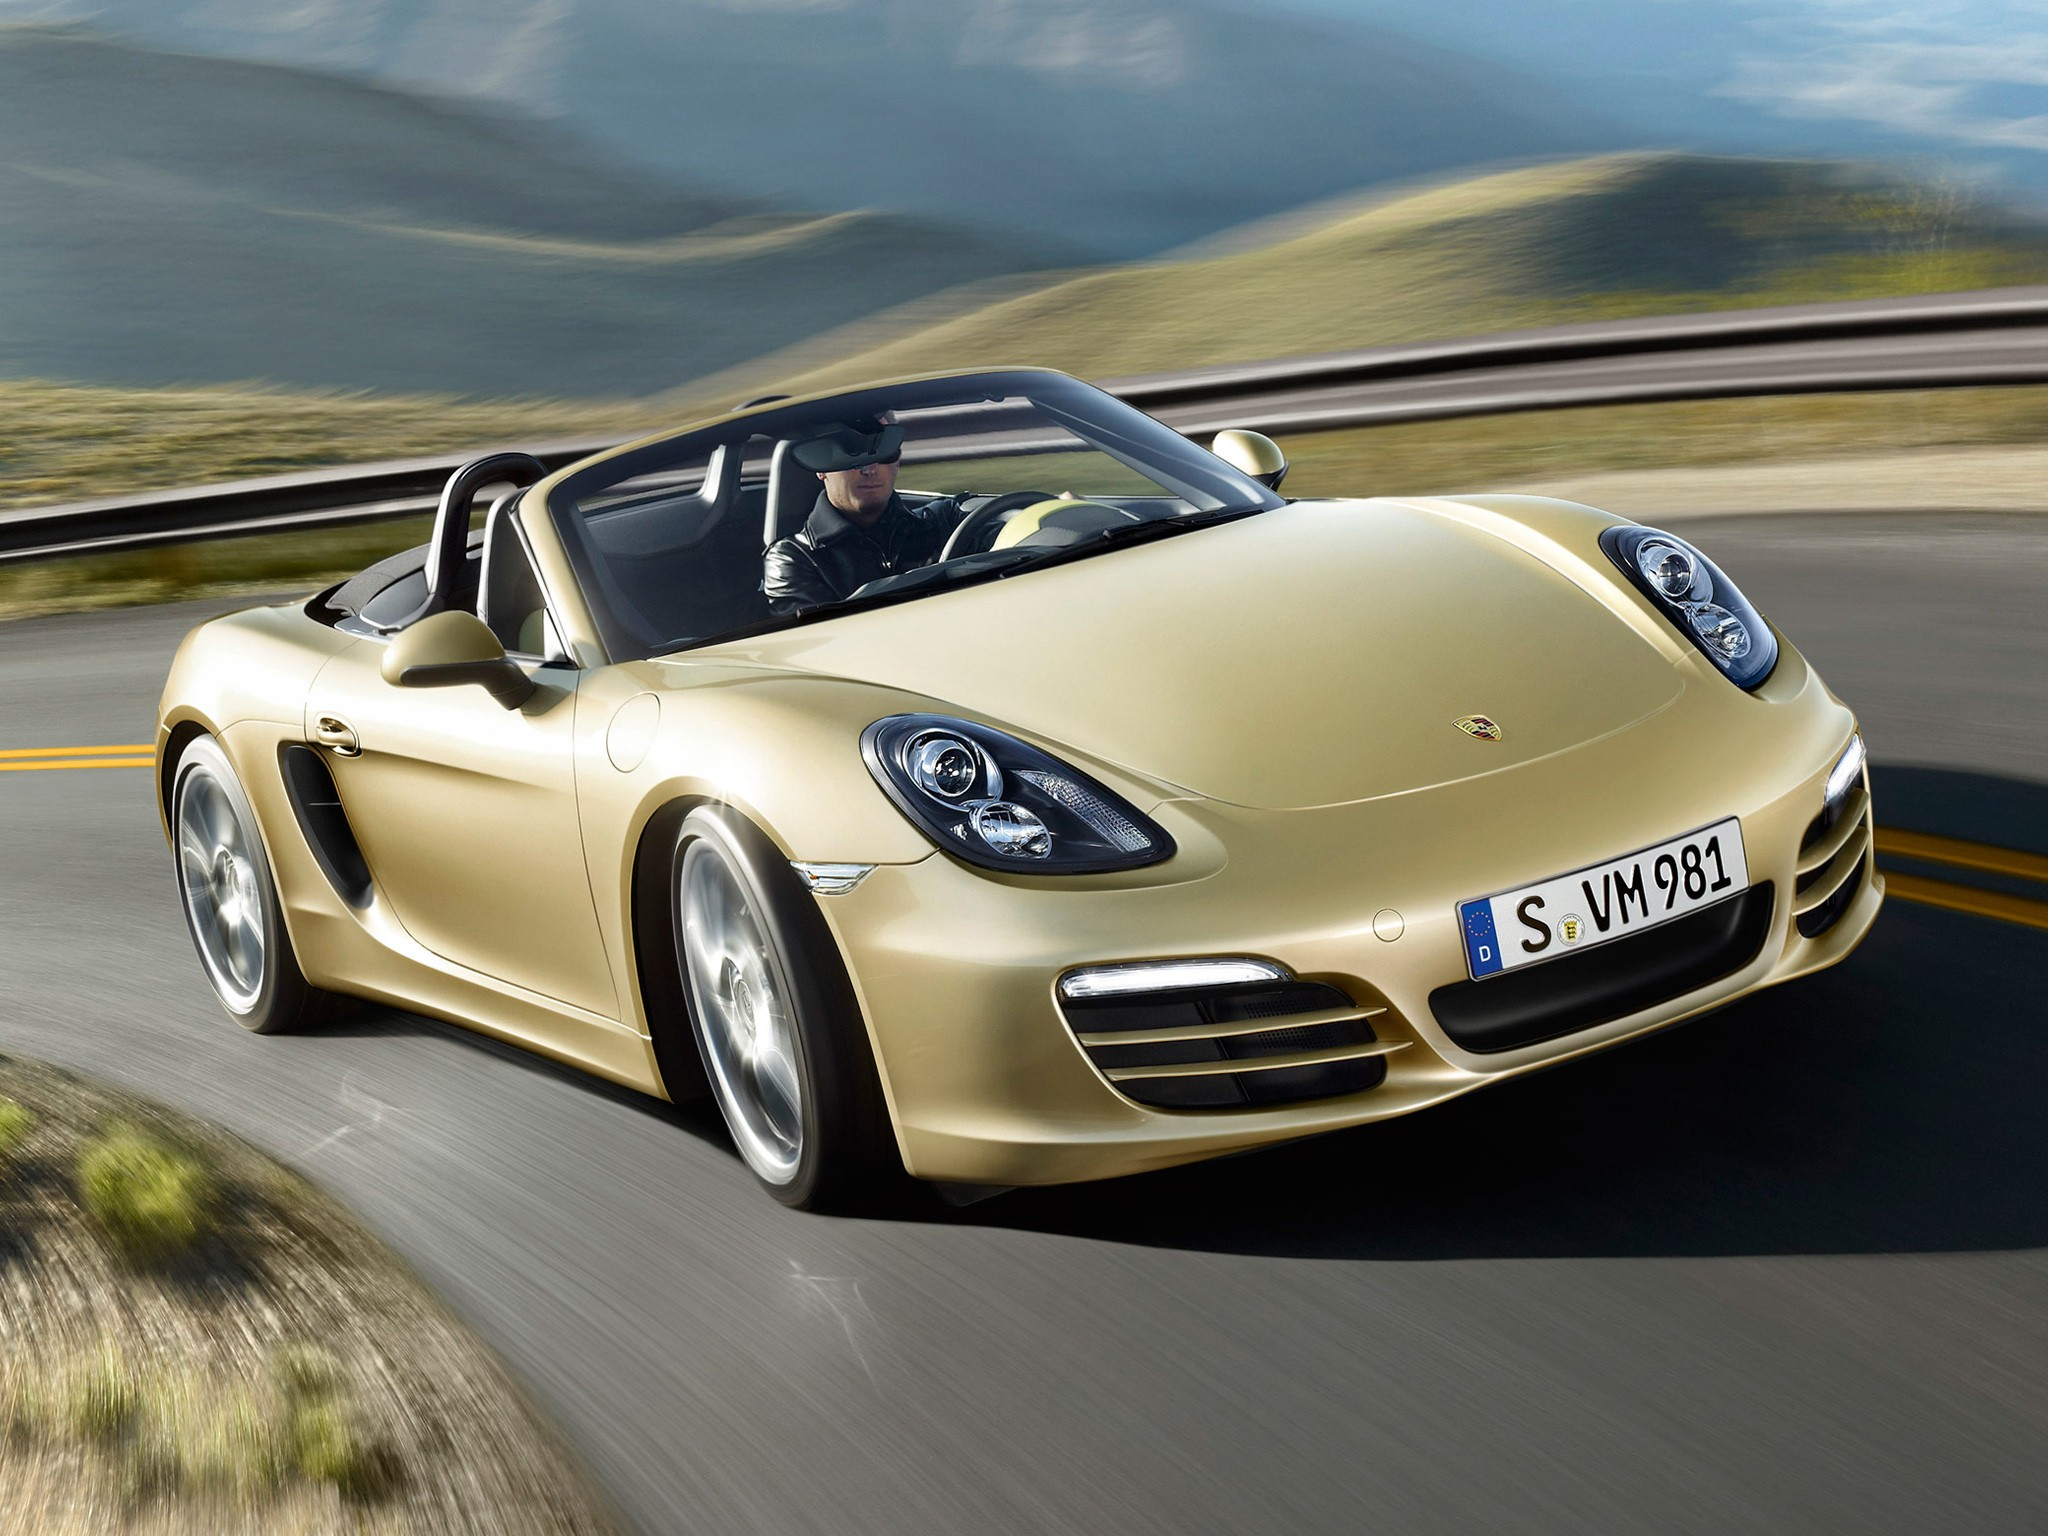 porsche boxster 981 specs 2012 2013 2014 2015 2016 autoevolution. Black Bedroom Furniture Sets. Home Design Ideas